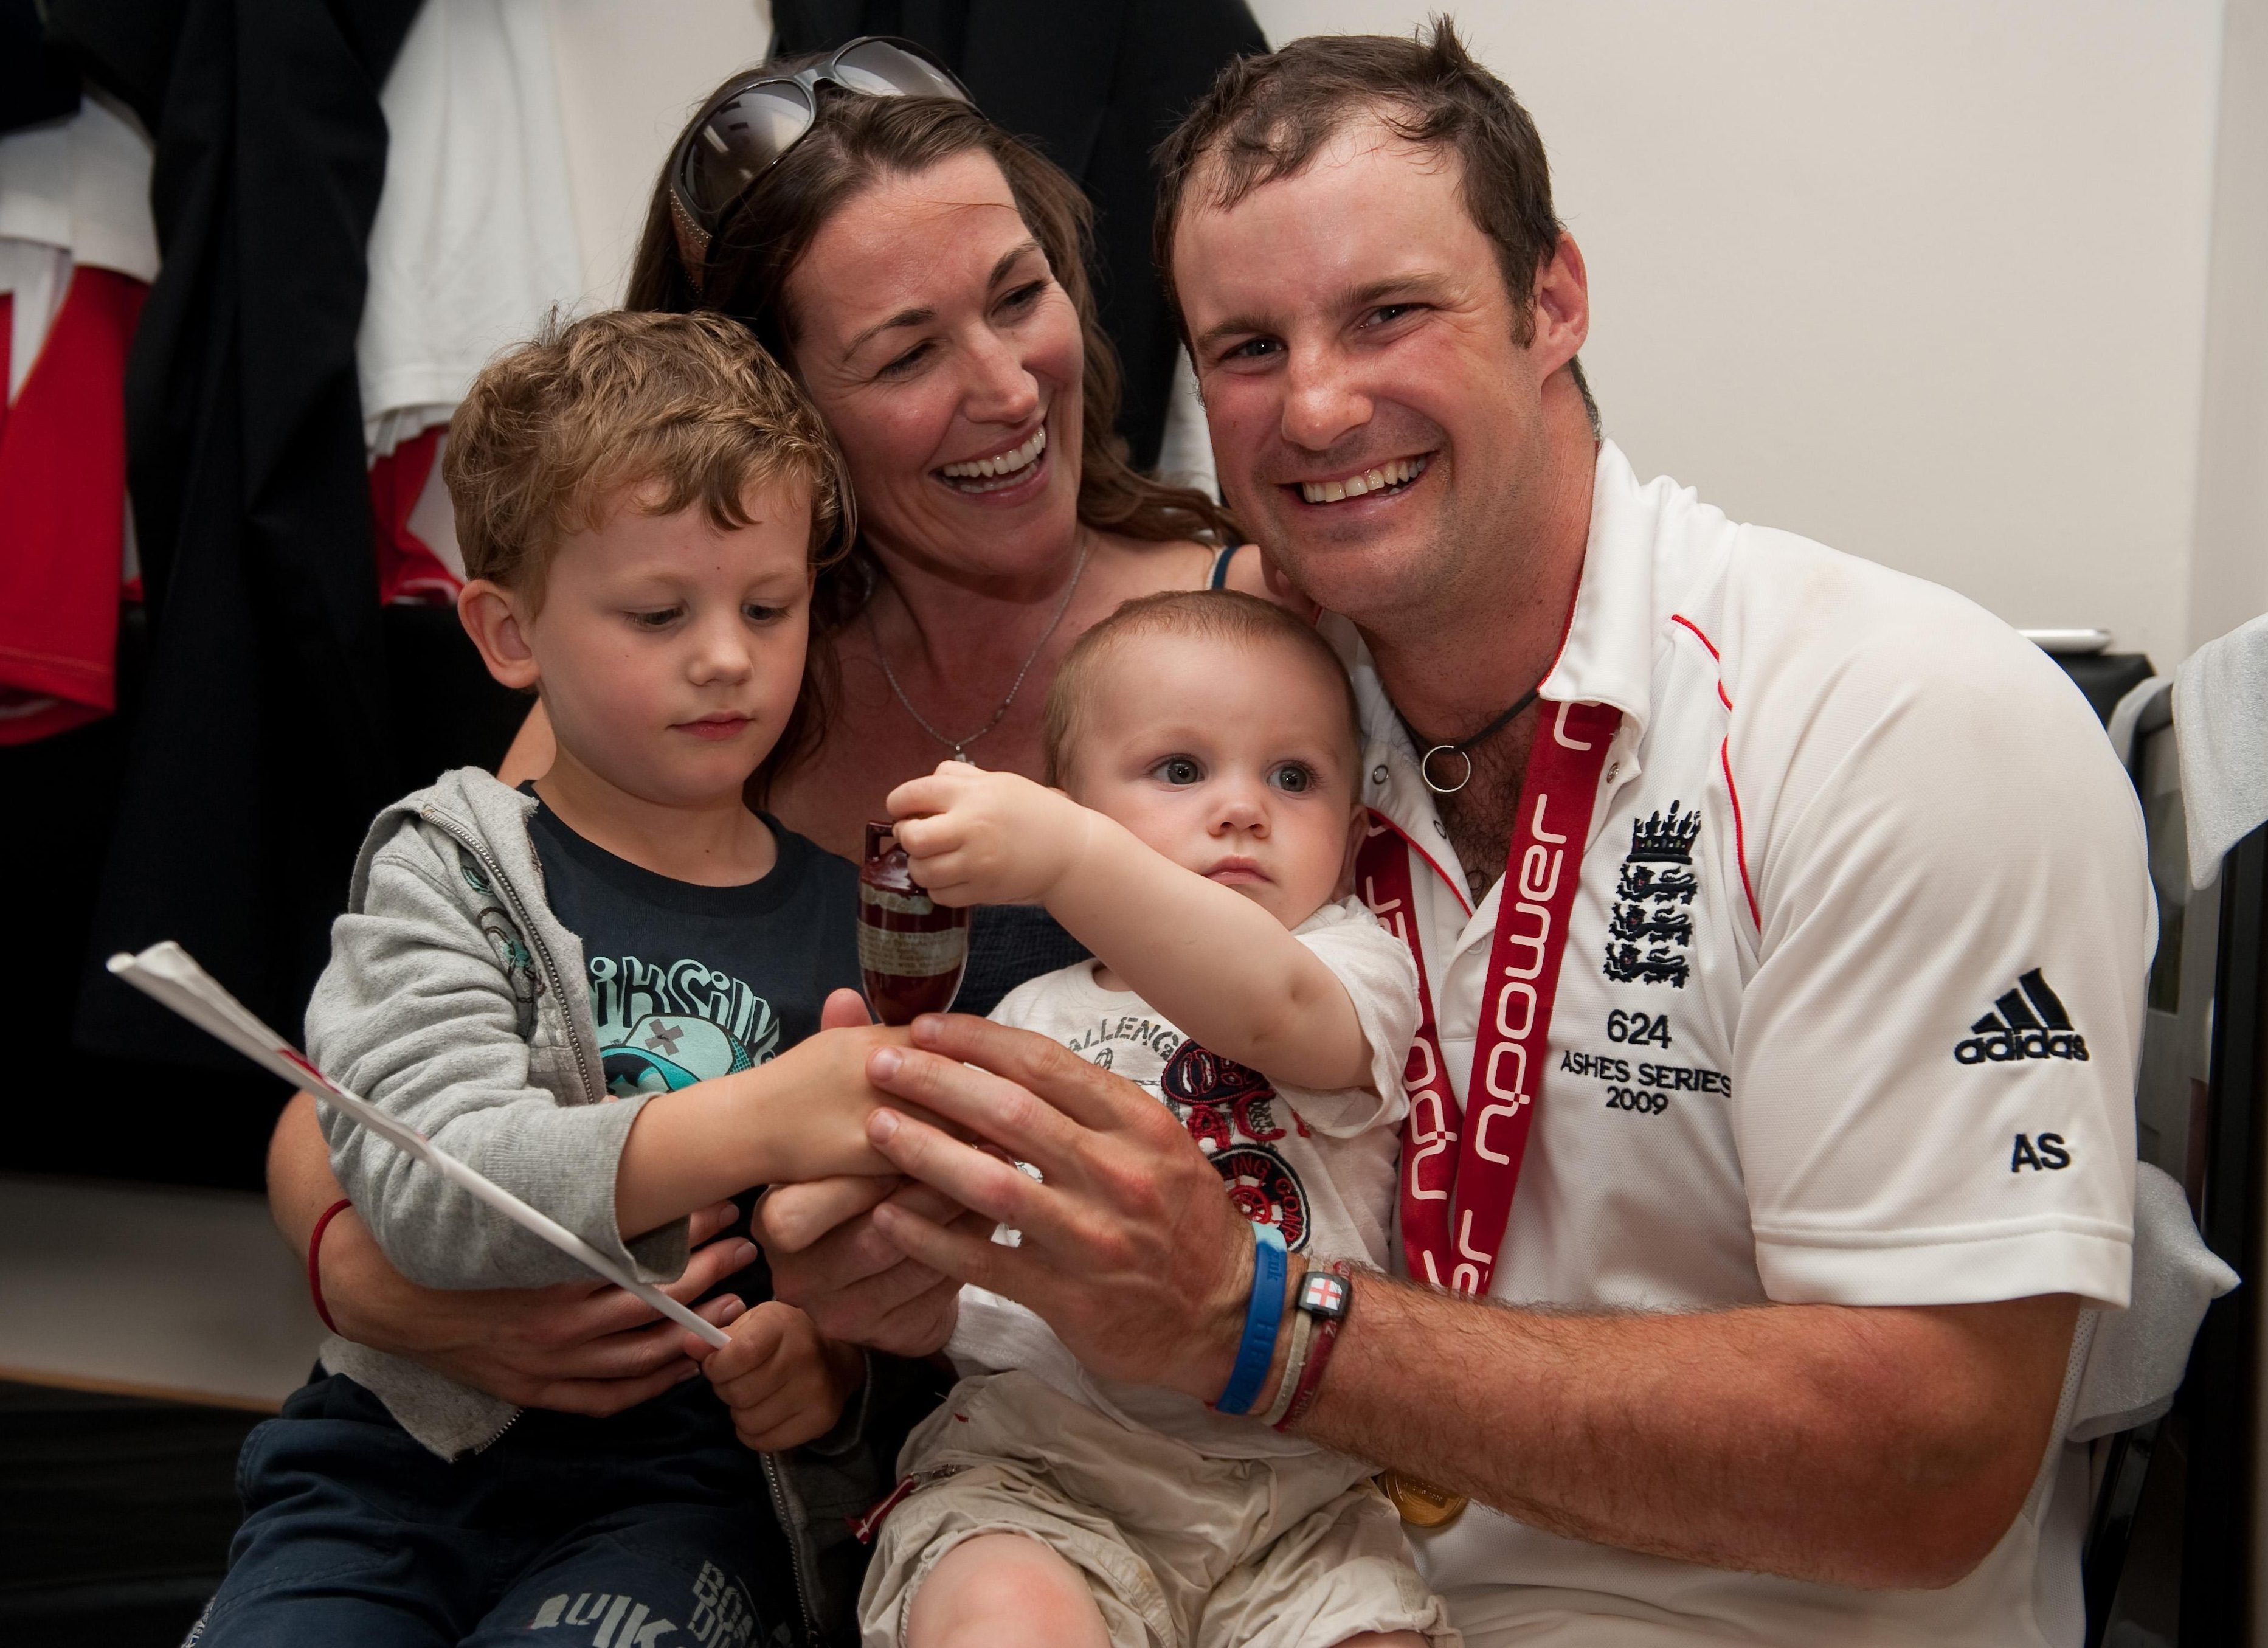 Andrew Strauss, seen with sons Samuel and Luca, will take the summer off to be with wife Ruth during her cancer treatment